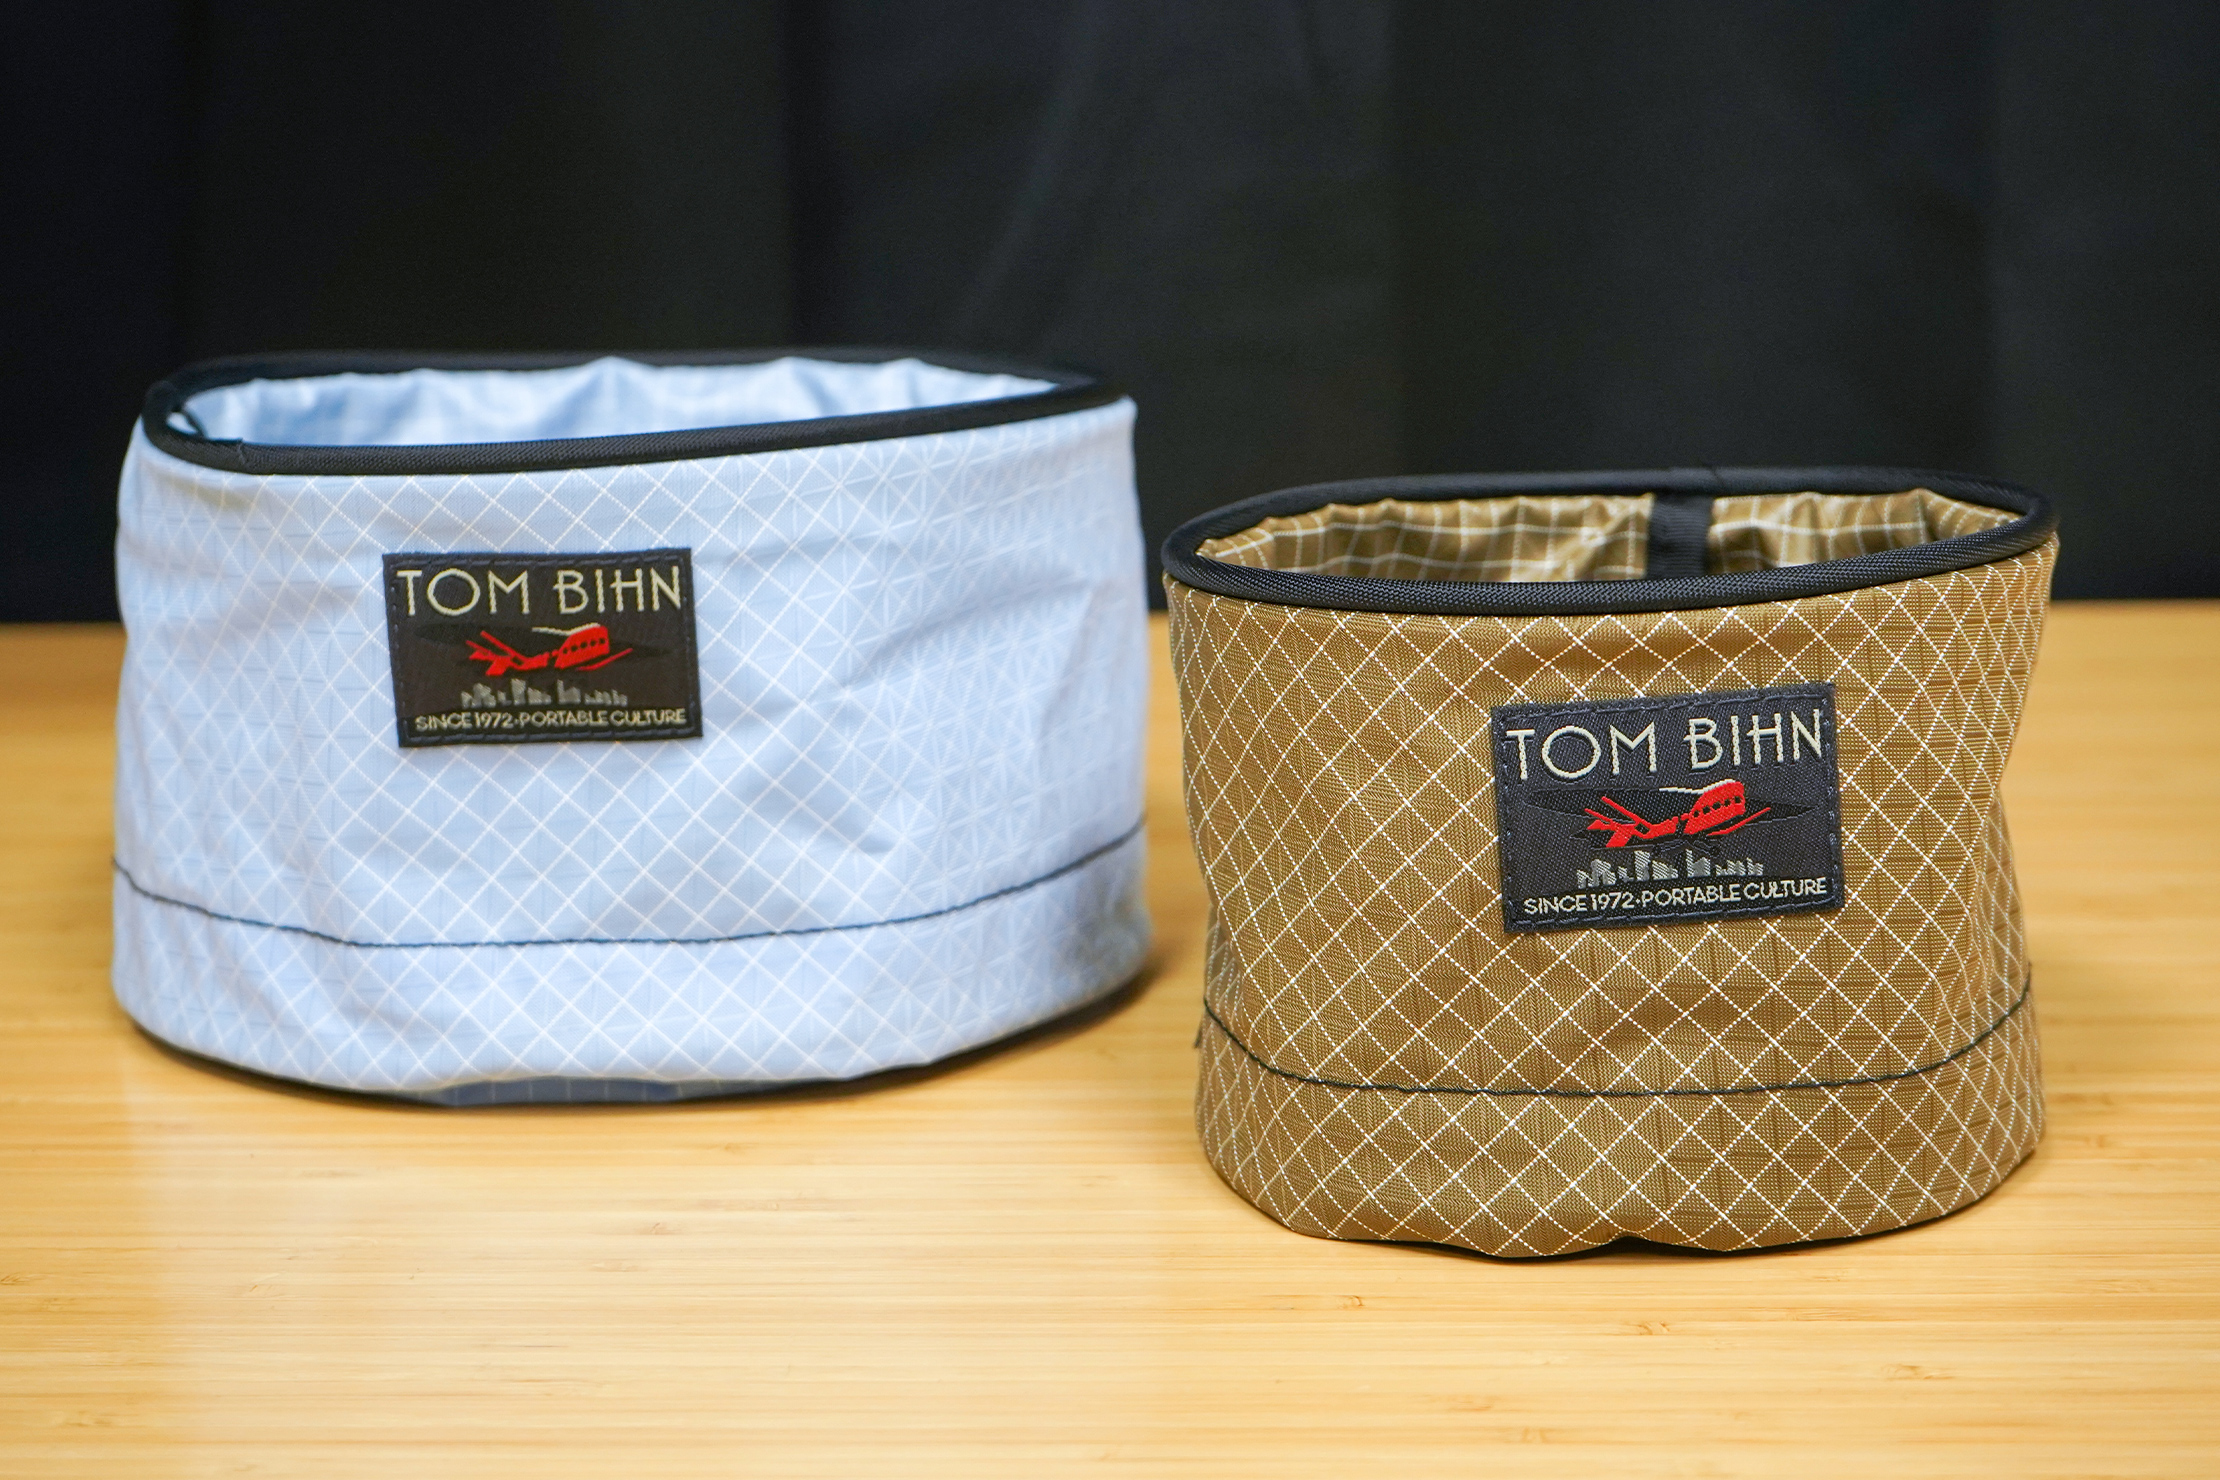 Tom Bihn Travel Tray | Using the Travel Trays while remotely working